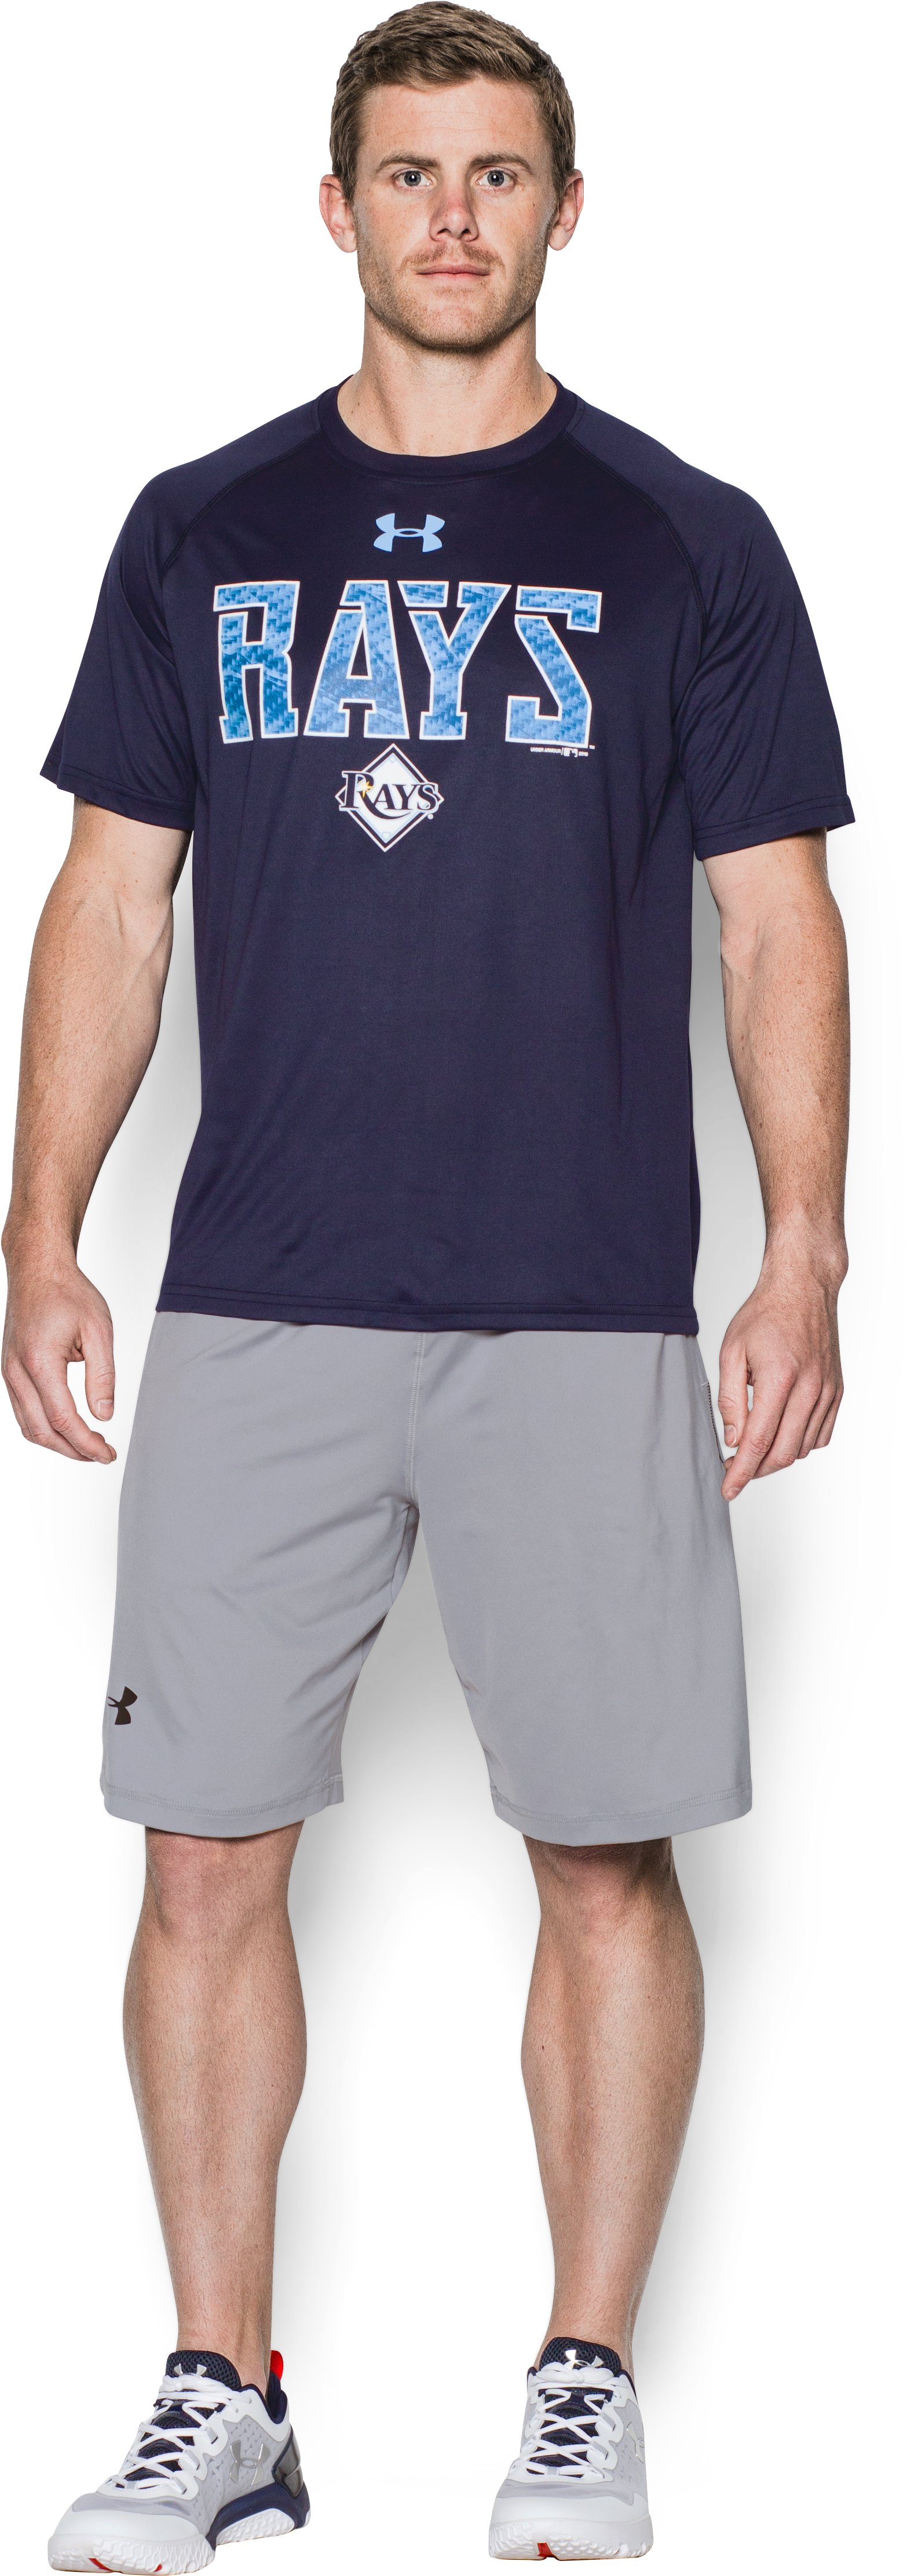 Men's Tampa Bay Rays Team Tech™ T-Shirt, Midnight Navy, Front